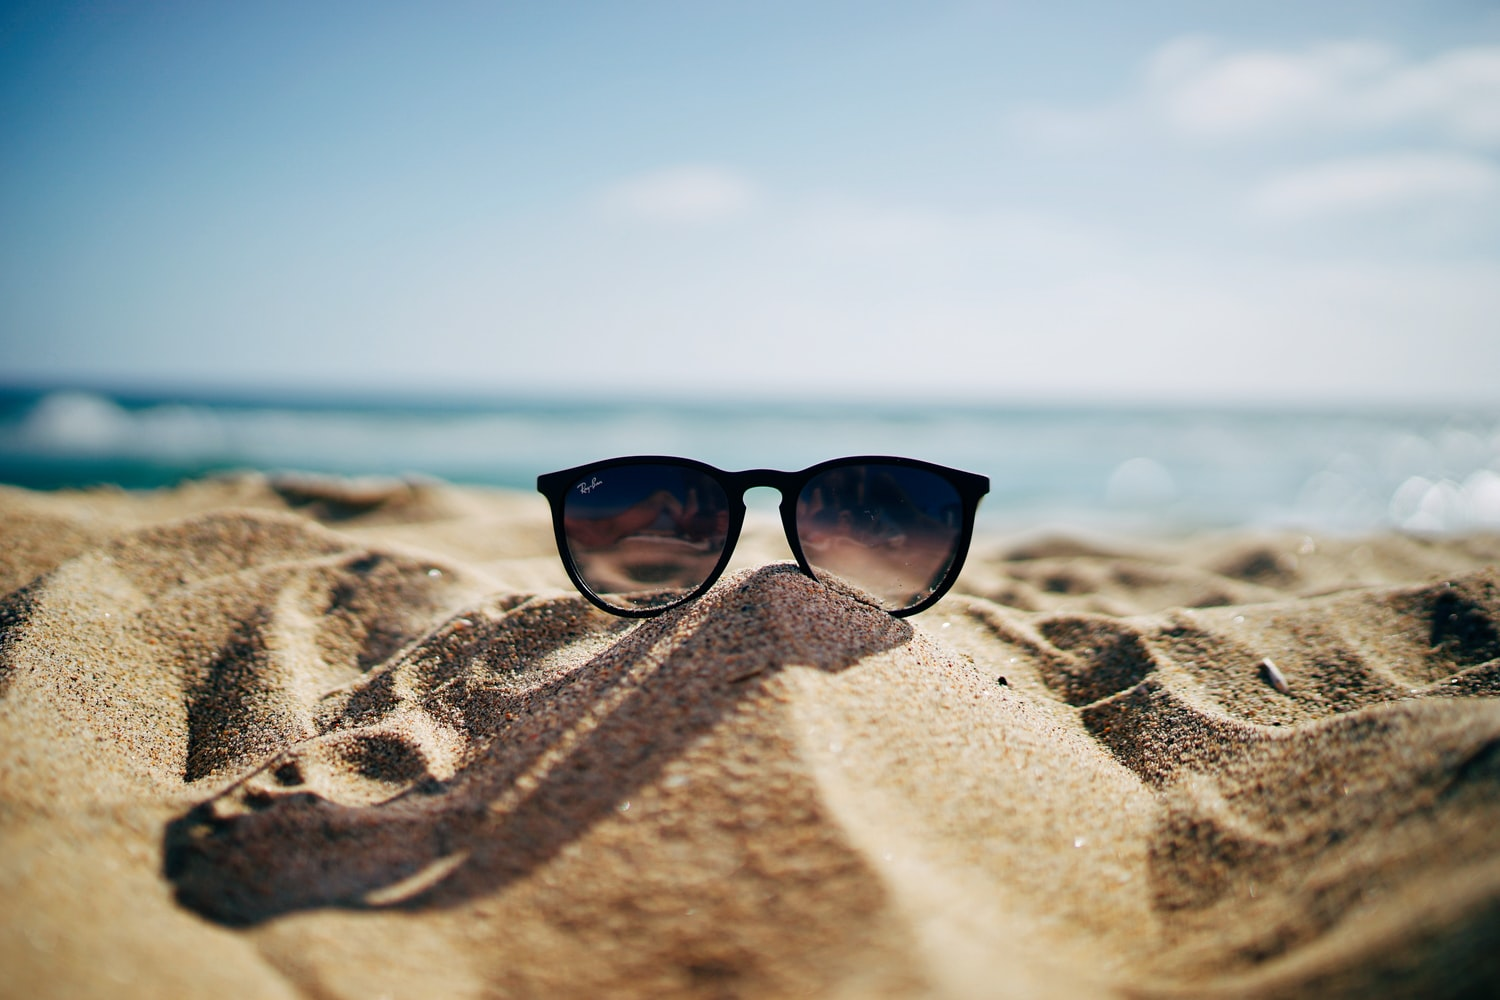 Black Ray-Ban sunglasses sitting on beach sand in front of blue ocean water